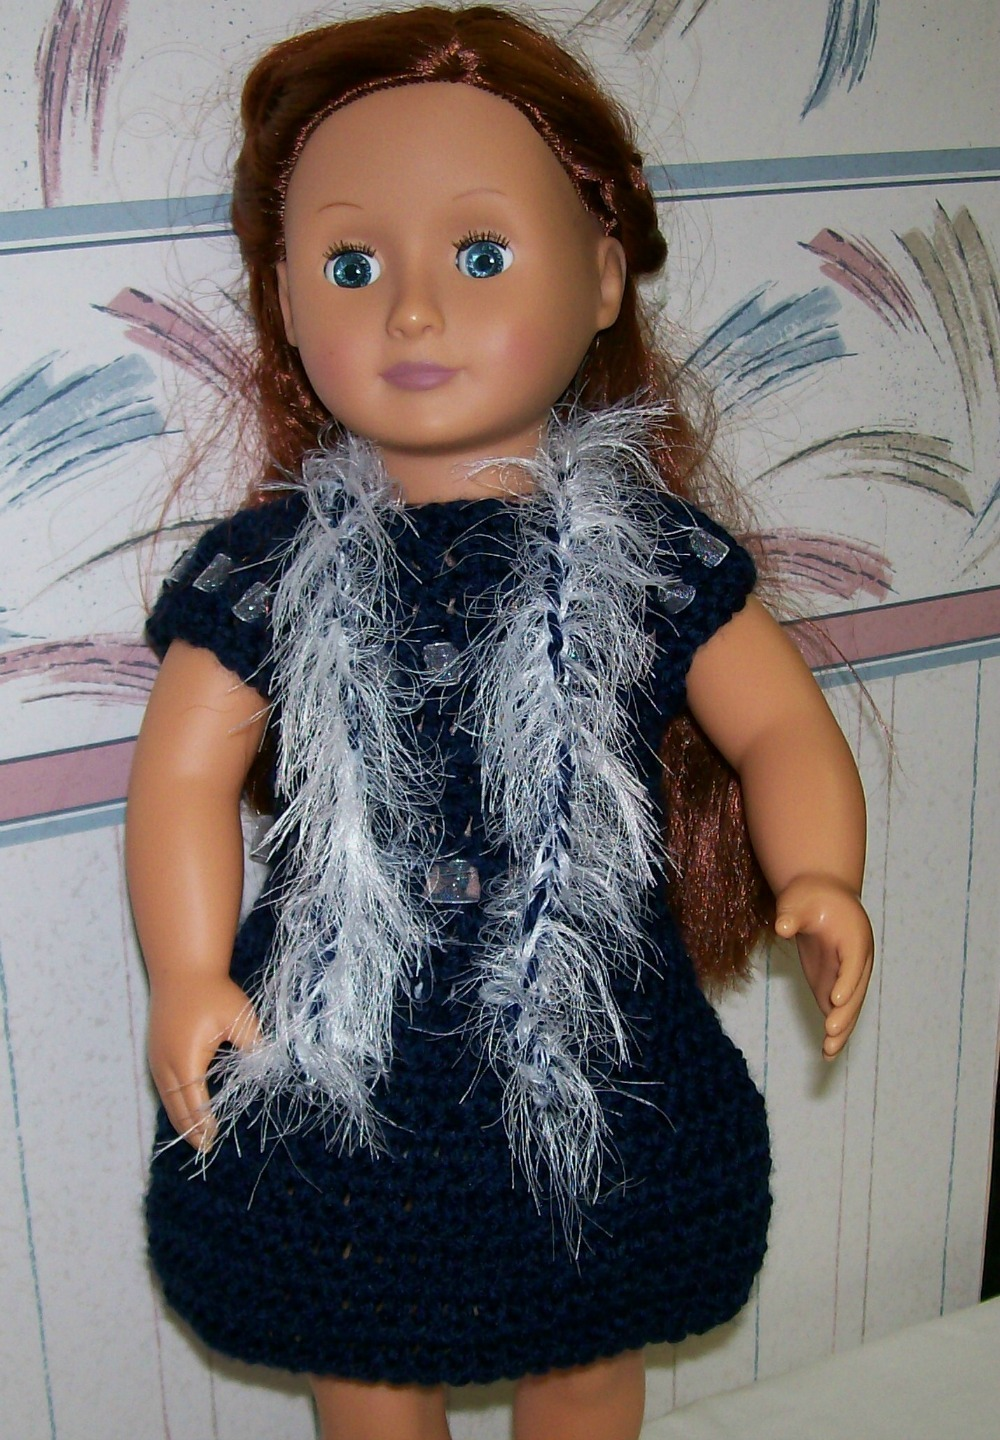 Primary image for American Girl Boa, Crochet, Handmade, 18 Inch Doll